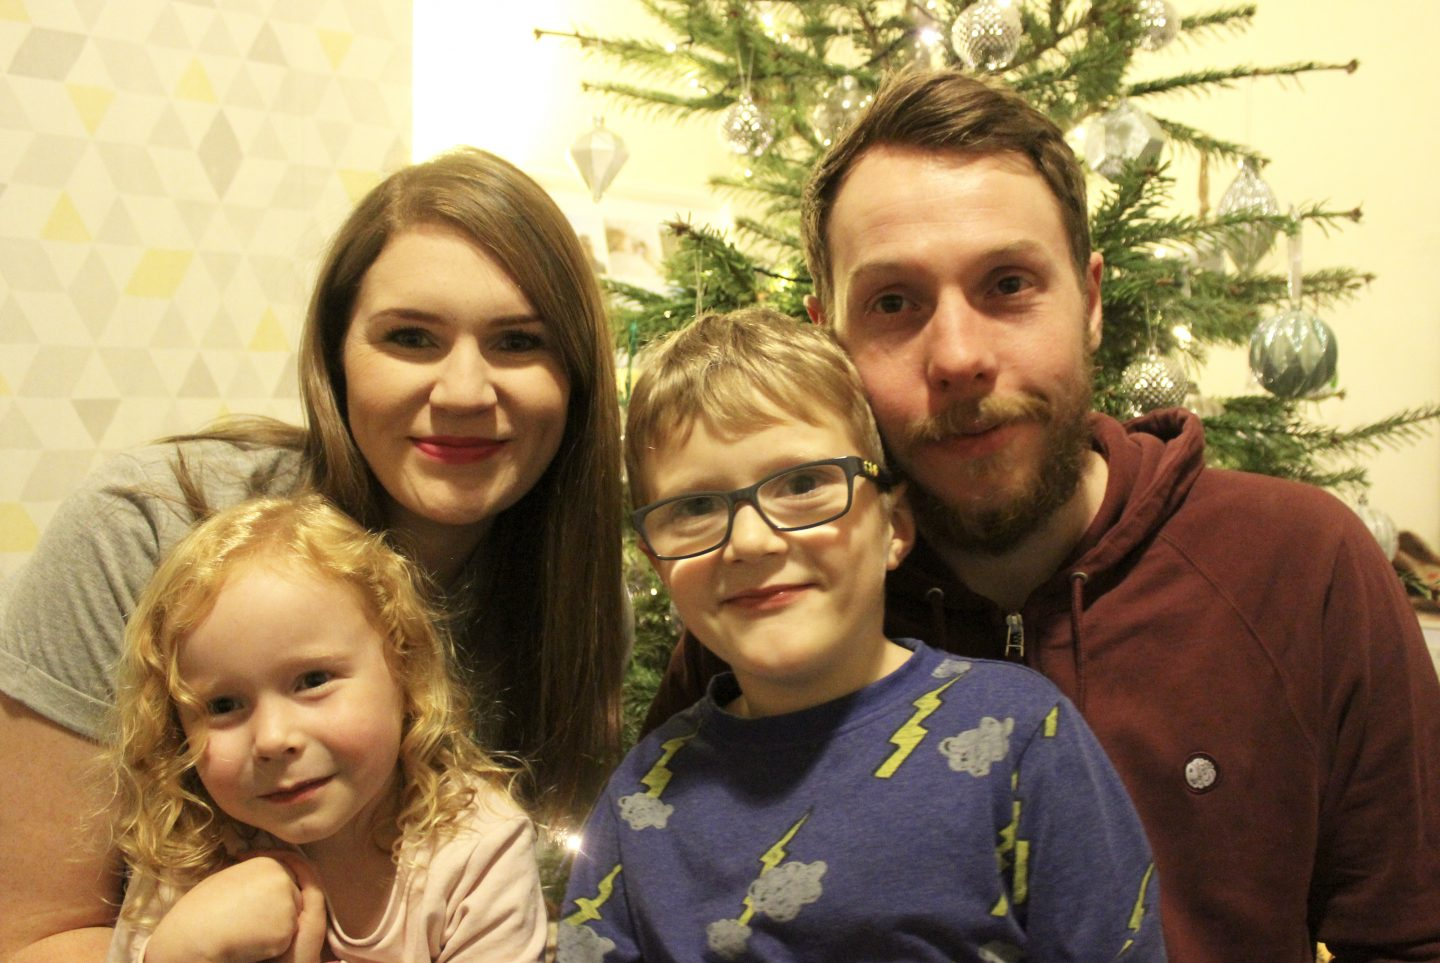 THE ME AND MINE PROJECT | DECEMBER | A WHOLE YEAR OF FAMILY PHOTOS